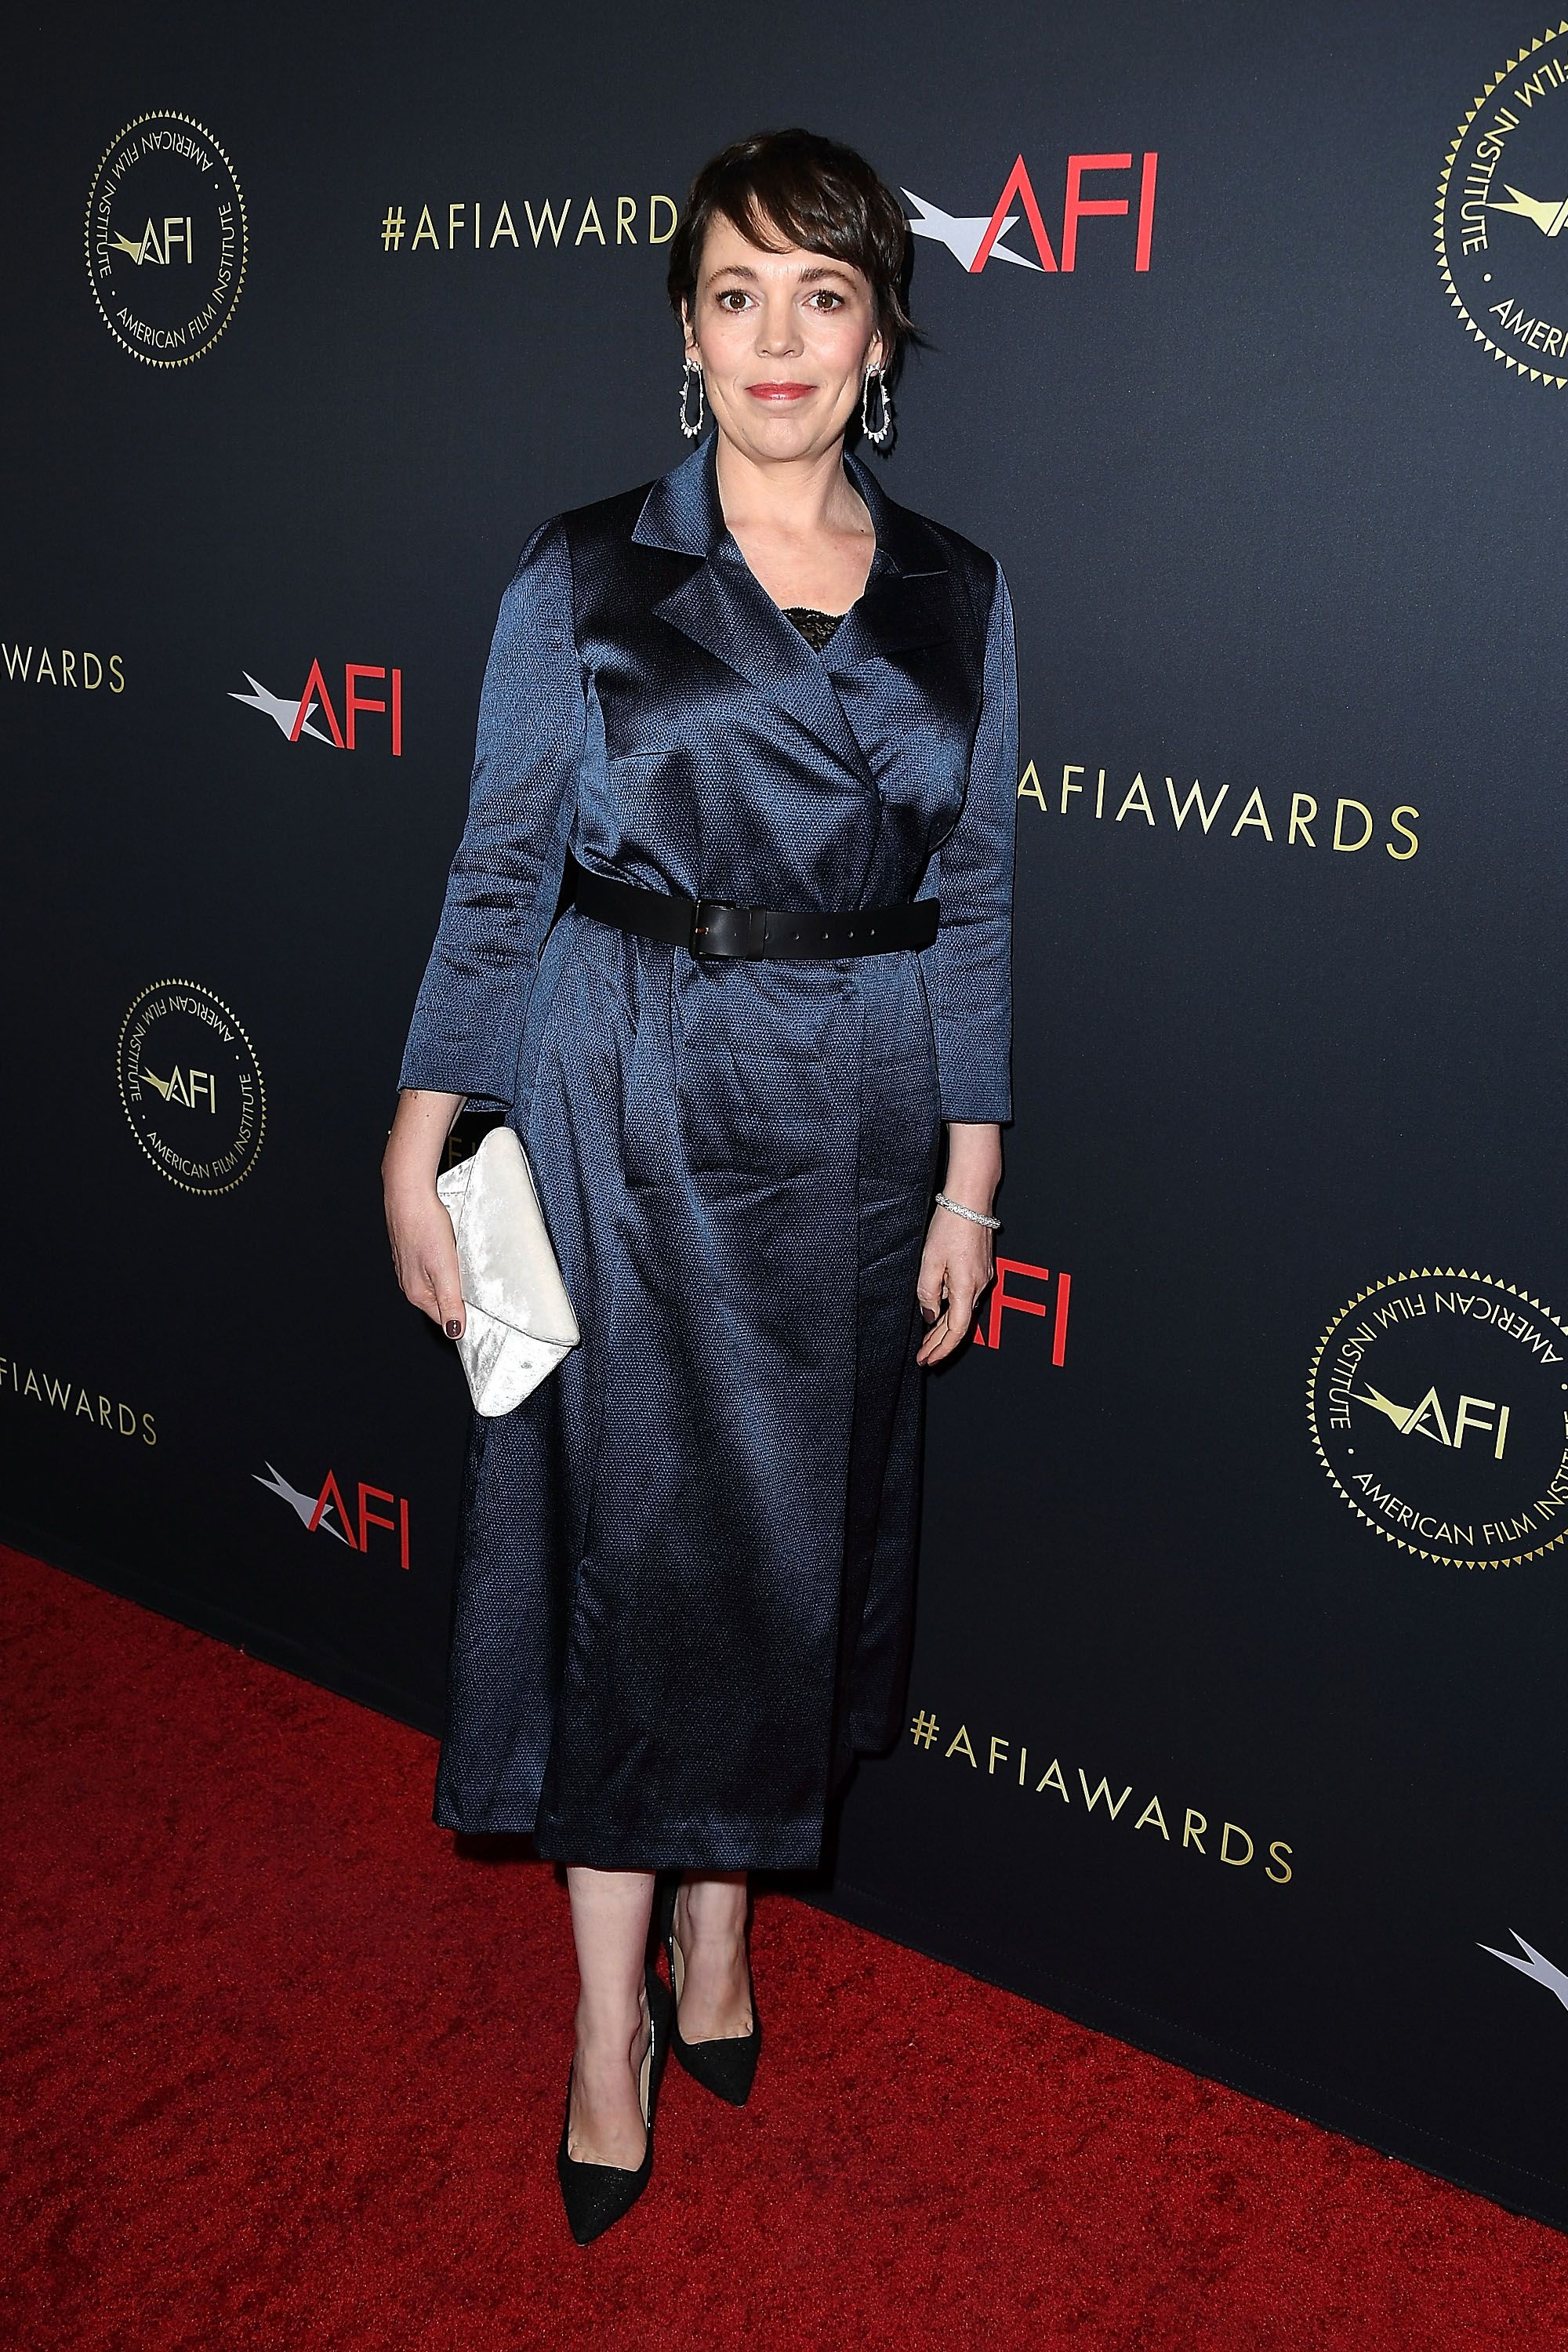 Olivia Colman attended the American Film Institute Awards wearing a navy silk dress with a black belt at her waist, hoop earrings, a white velvet clutch, and black stilettos.